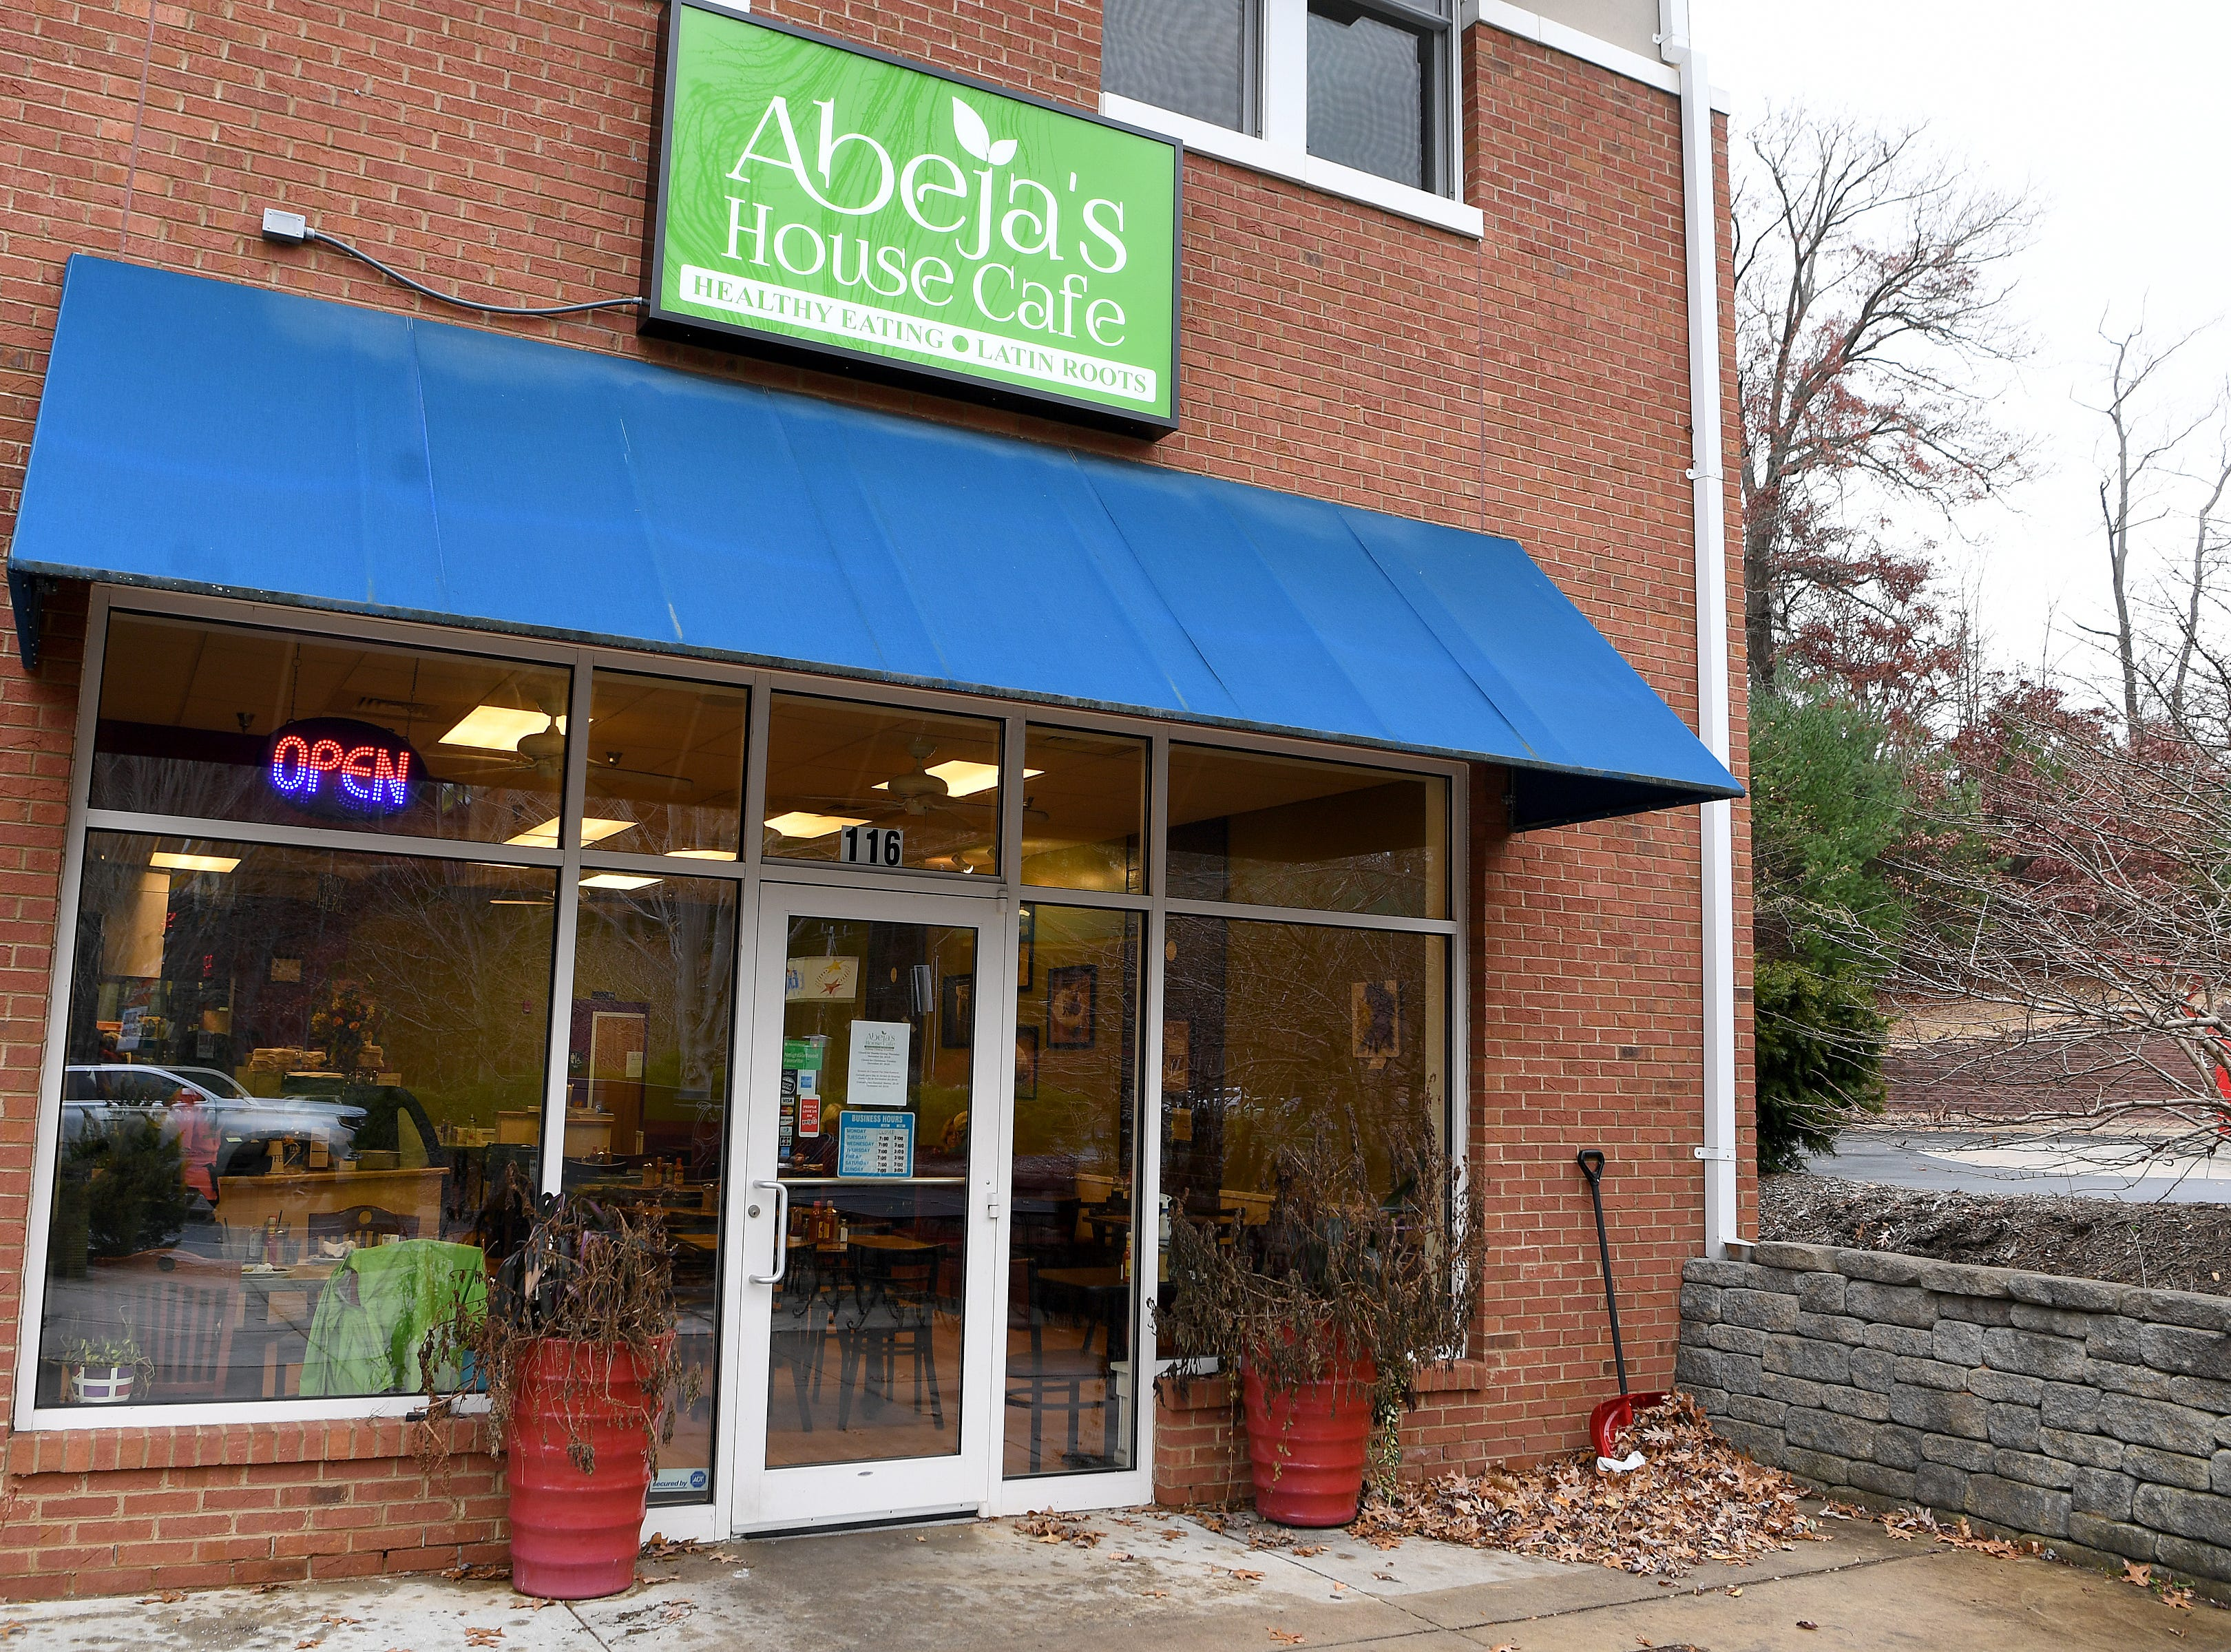 Abeja's House Cafe on Hendersonville Road is open Tuesday through Sunday for breakfast and lunch from 7a.m. to 3 p.m.